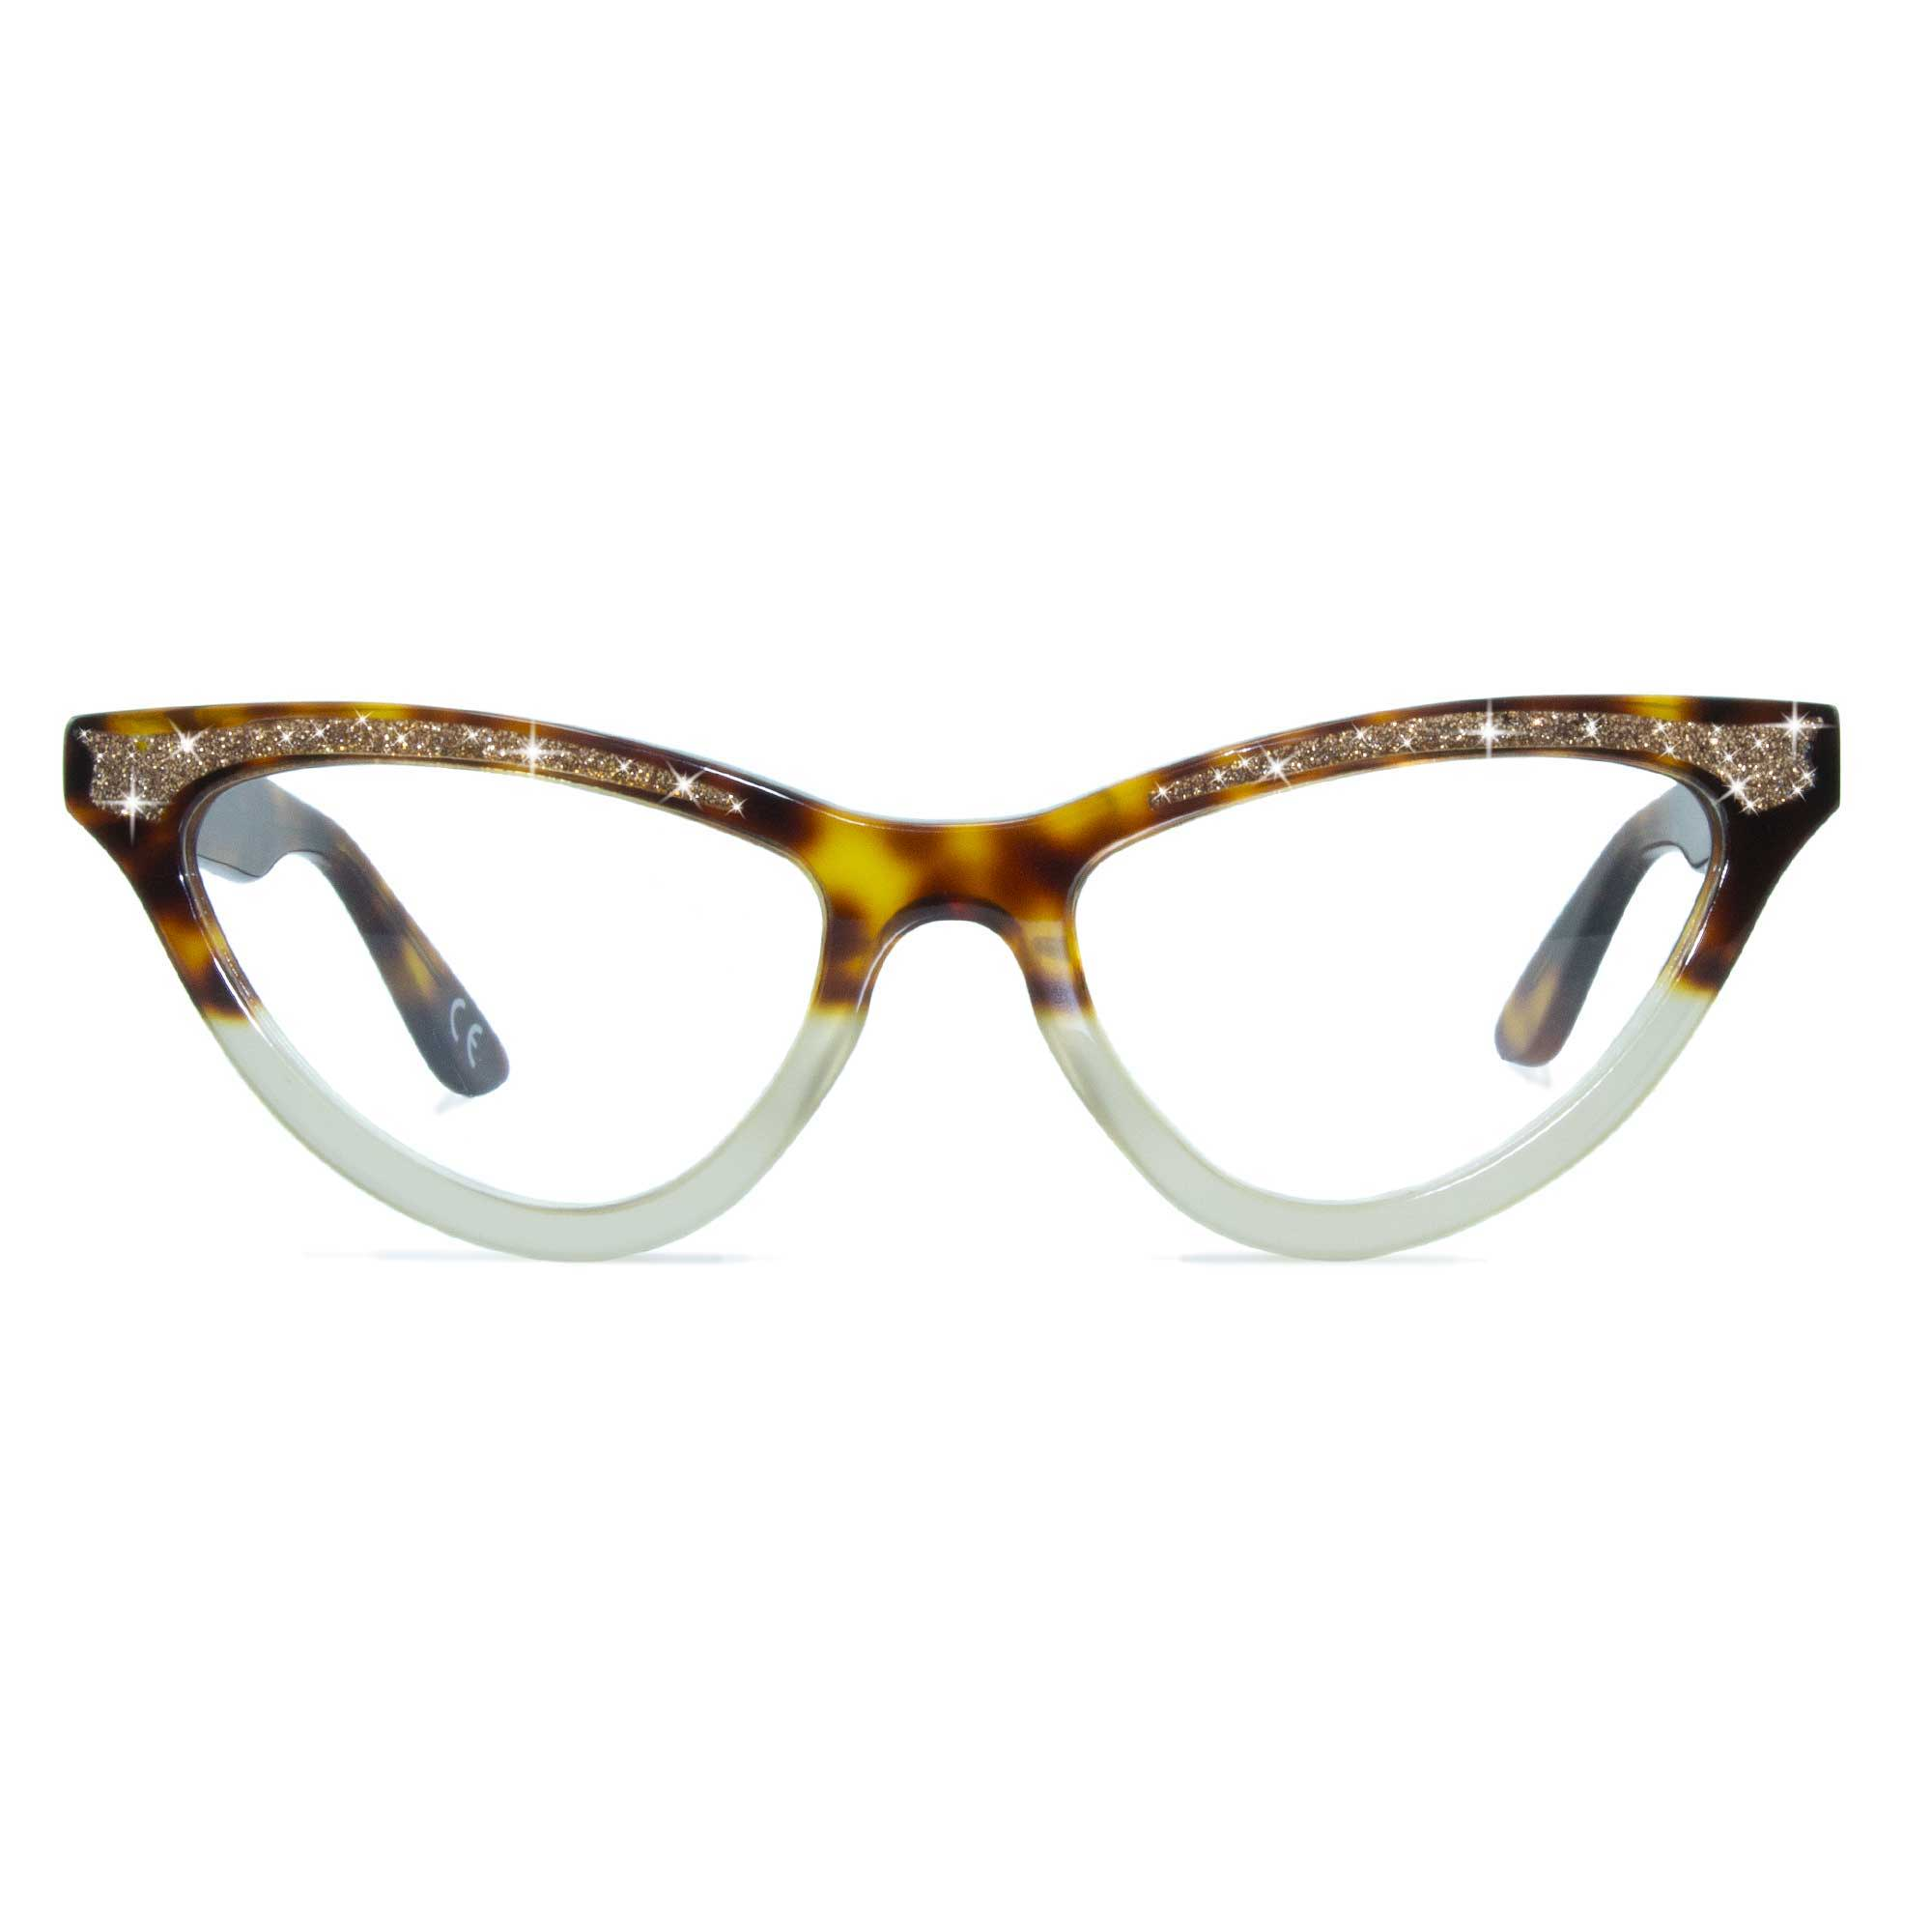 Joiuss maryloo tortoiseshell cat eye glasses